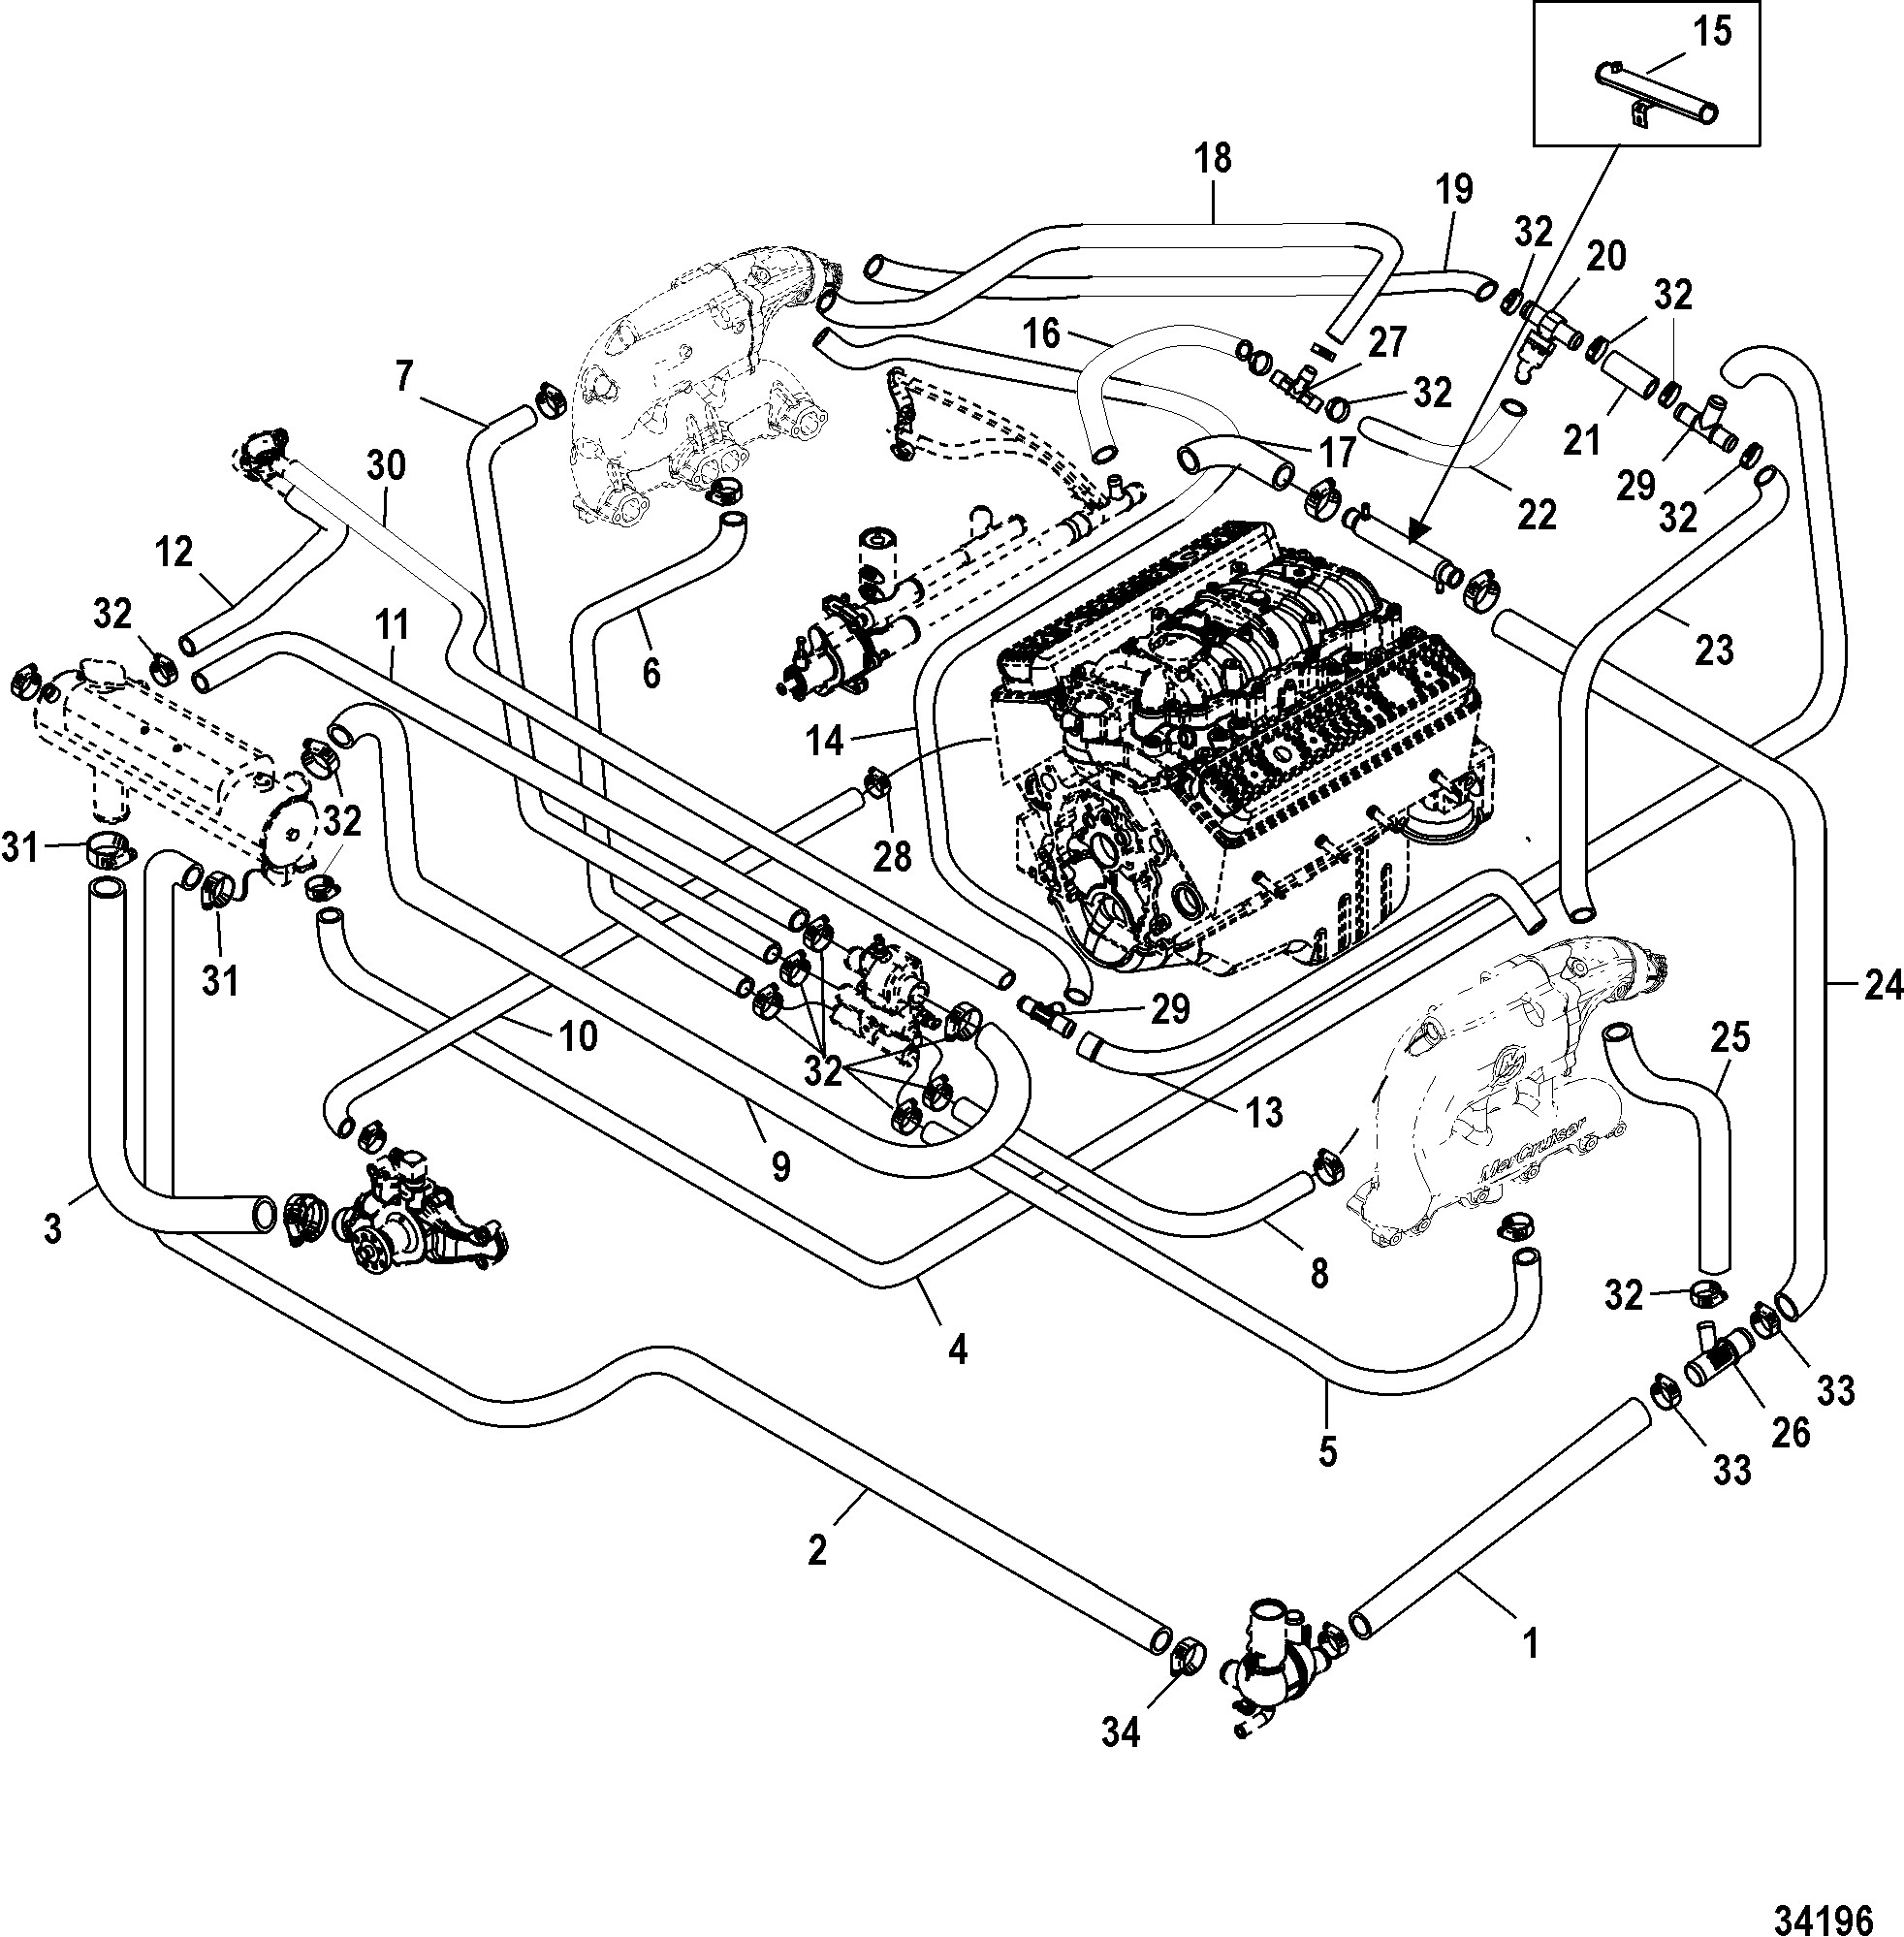 Mercruiser 170 Cooling System Diagram Com